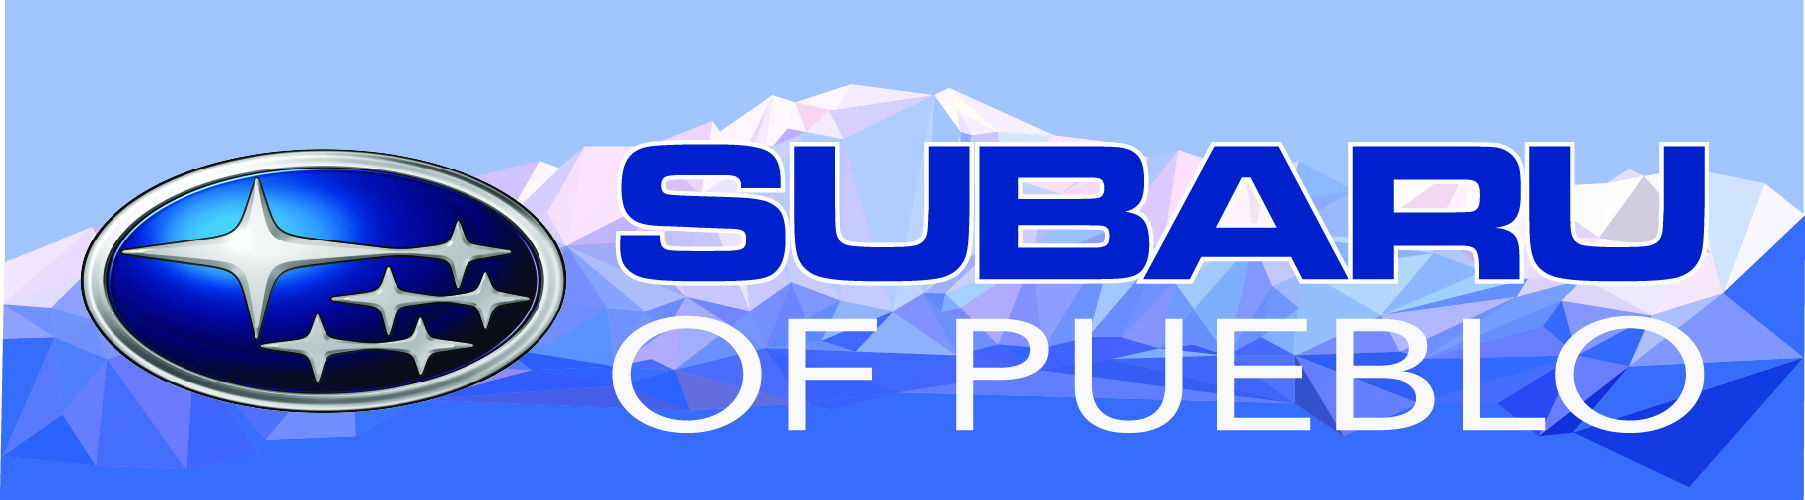 SUBARU COLOR MOUNTAIN LOGO .jpg